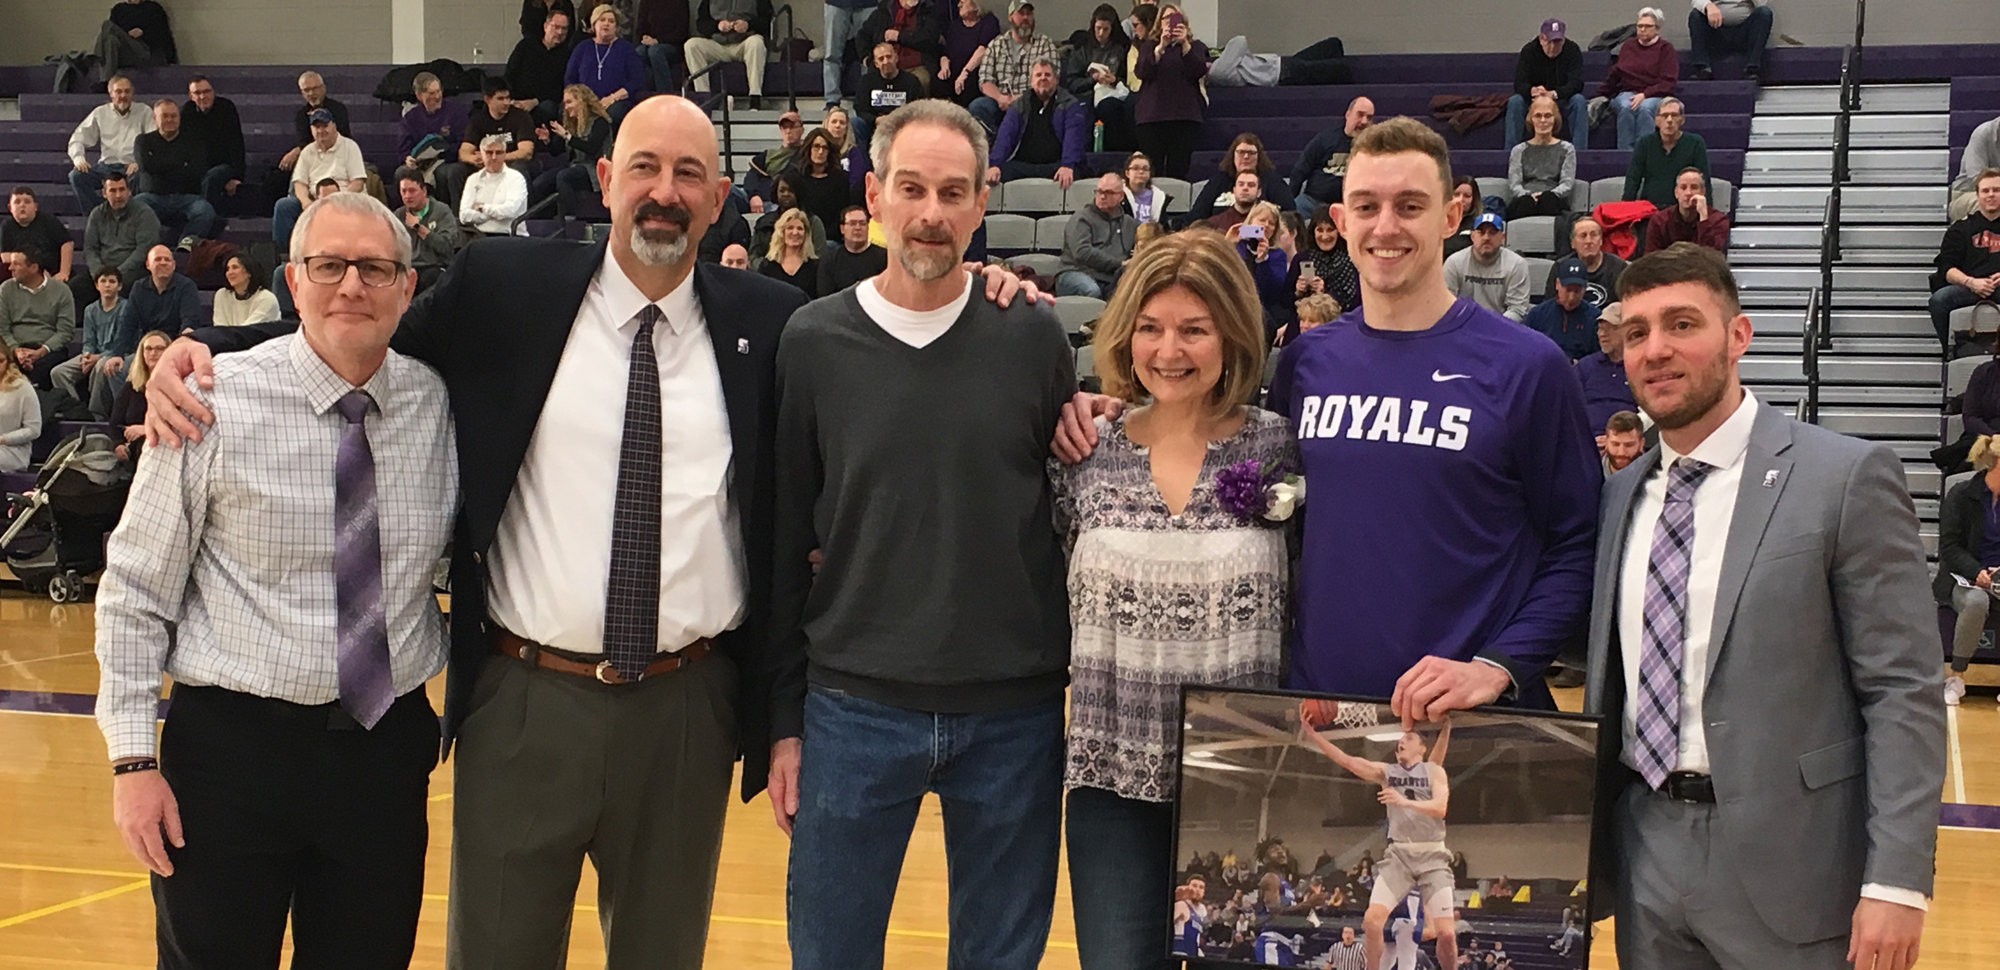 Senior Jack Connelly was honored prior to Saturday's win over Juniata that clinched a Landmark Conference playoff berth for the Royals.